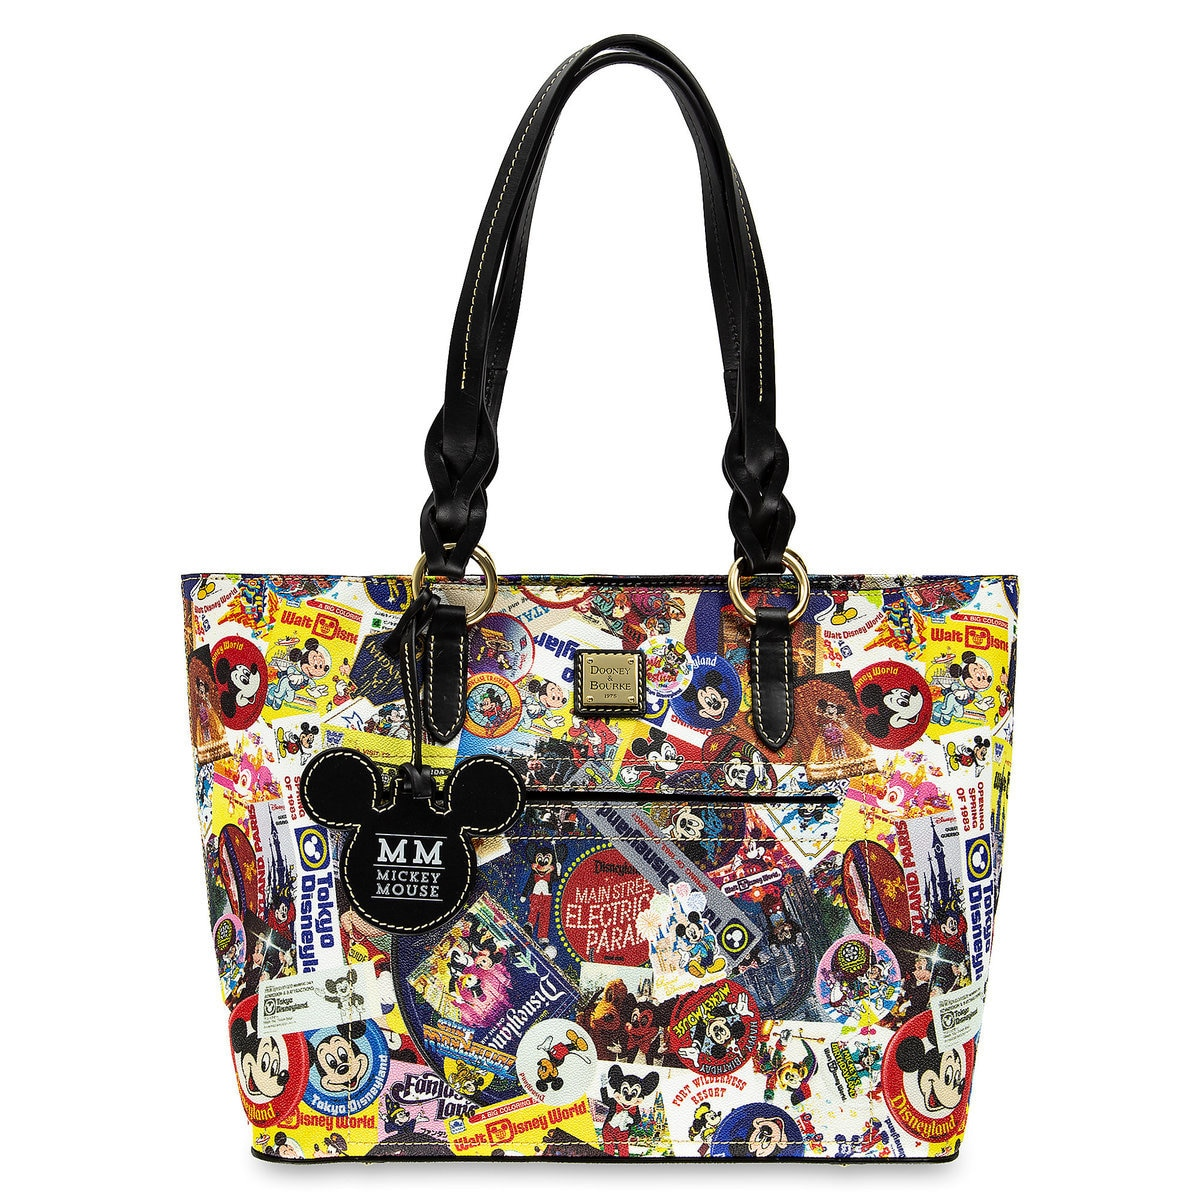 4679a8d5f74 Product Image of Mickey Mouse Tote Bag by Dooney & Bourke # 1